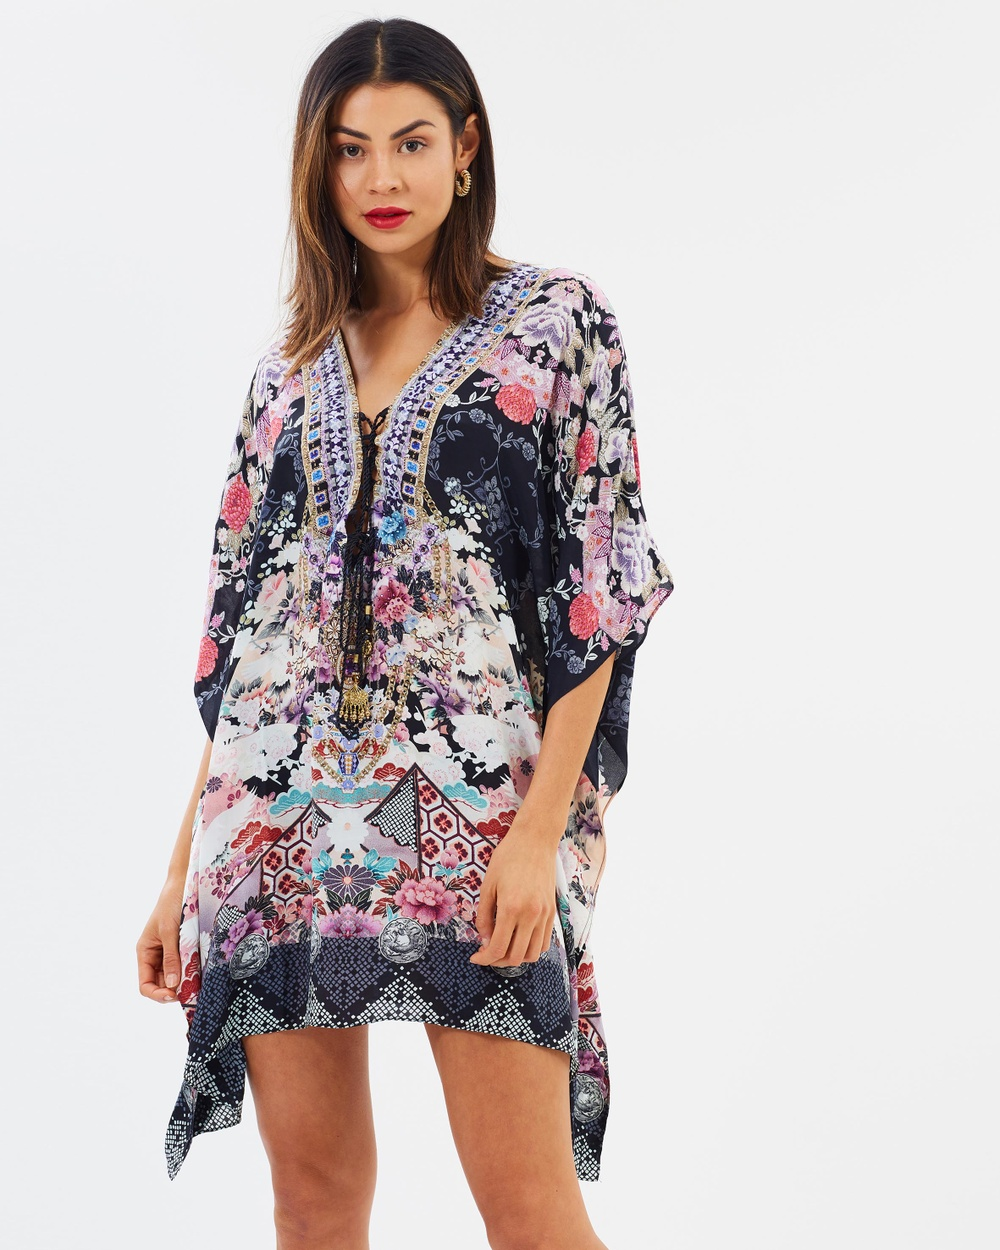 Camilla Short Lace Up Kaftan Printed Dresses Nights With Her Short Lace Up Kaftan